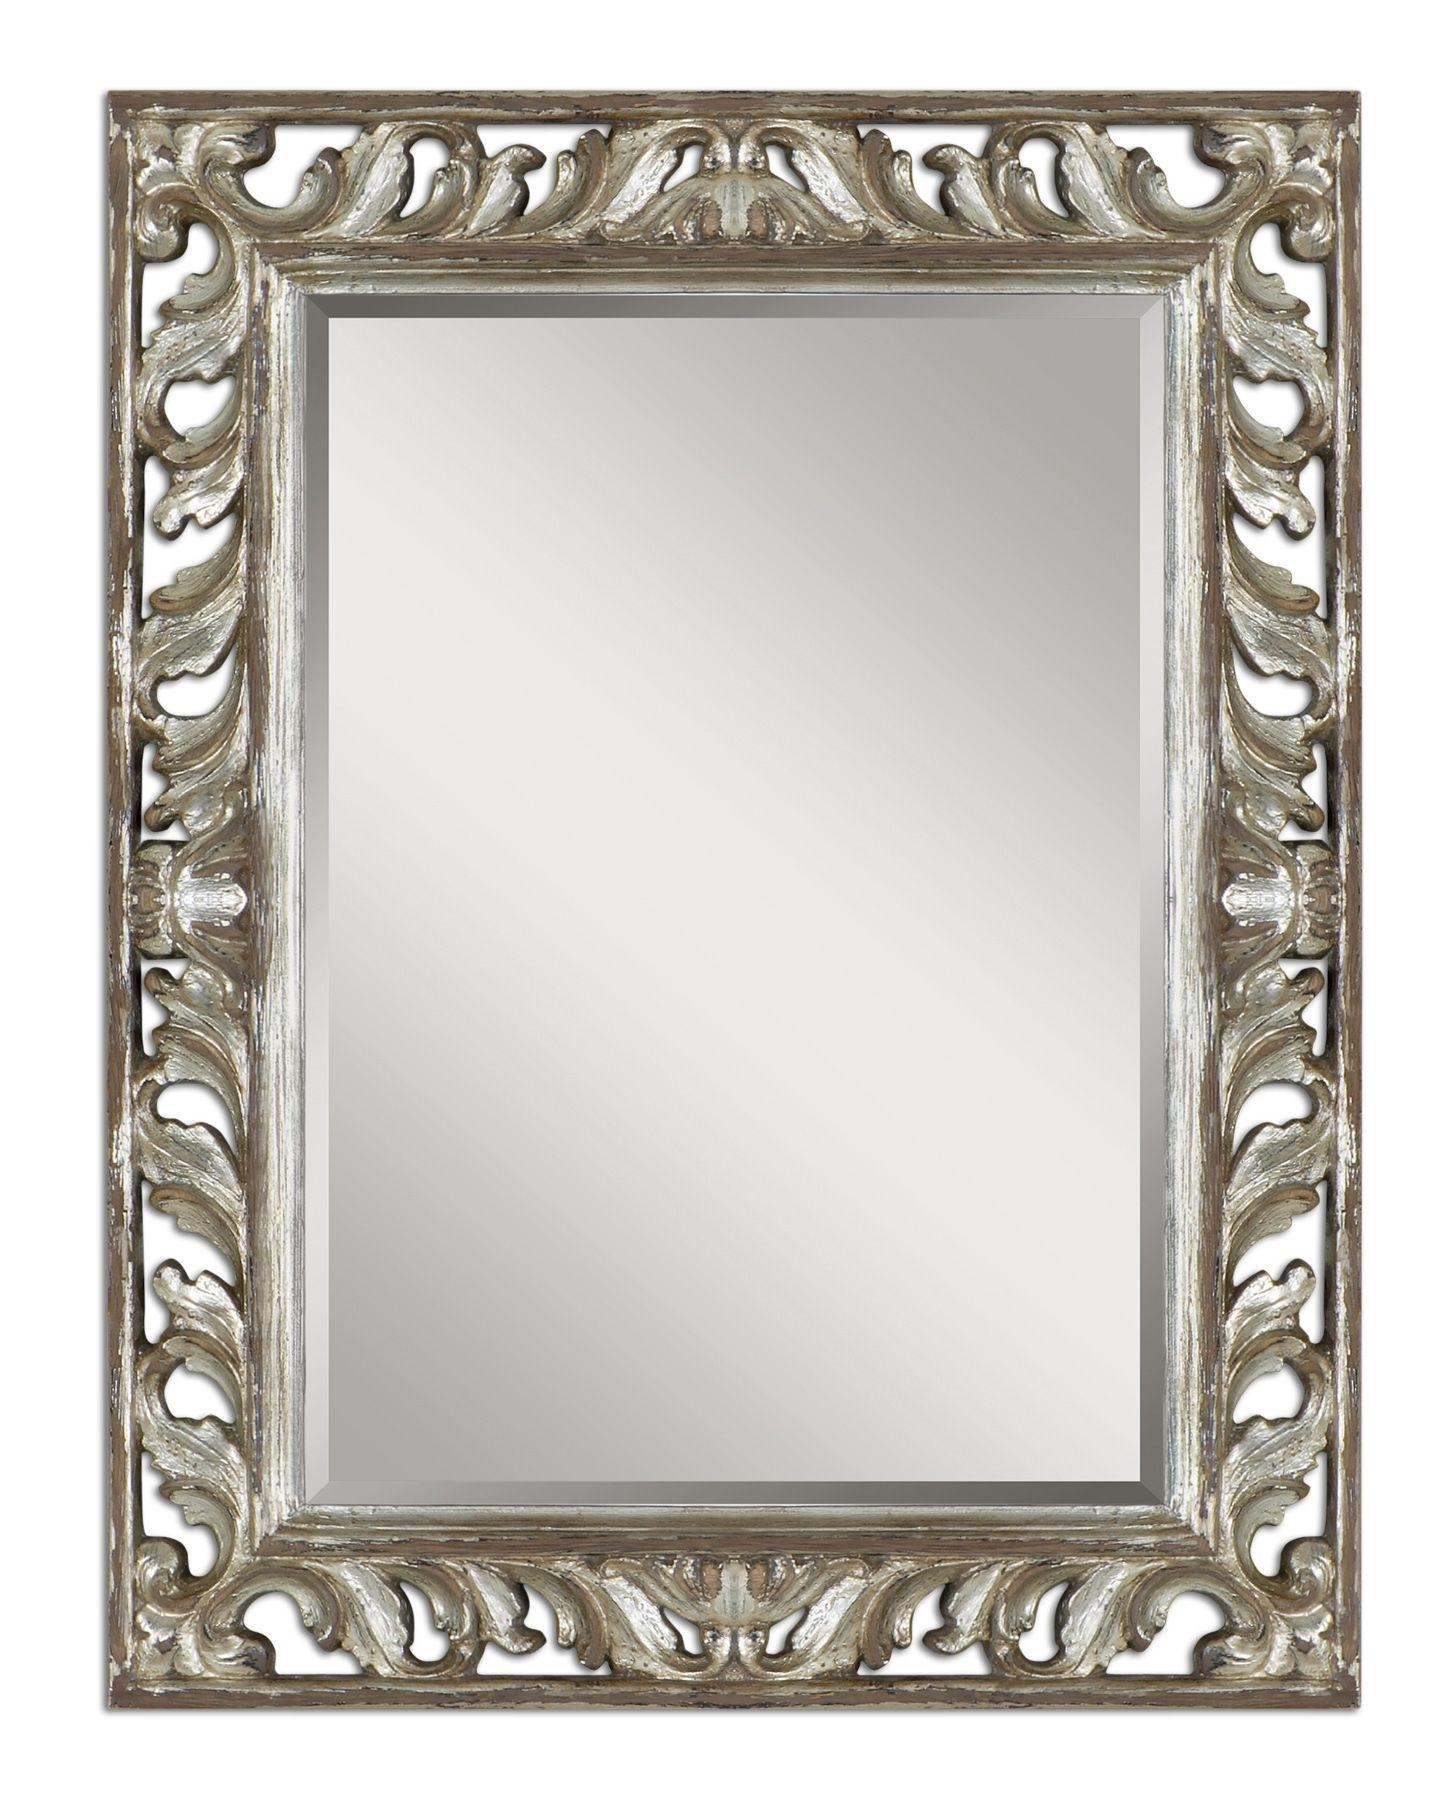 Uttermost Vitaliano Distressed Silver Mirror 09511 Throughout Distressed Silver Mirror (View 4 of 20)